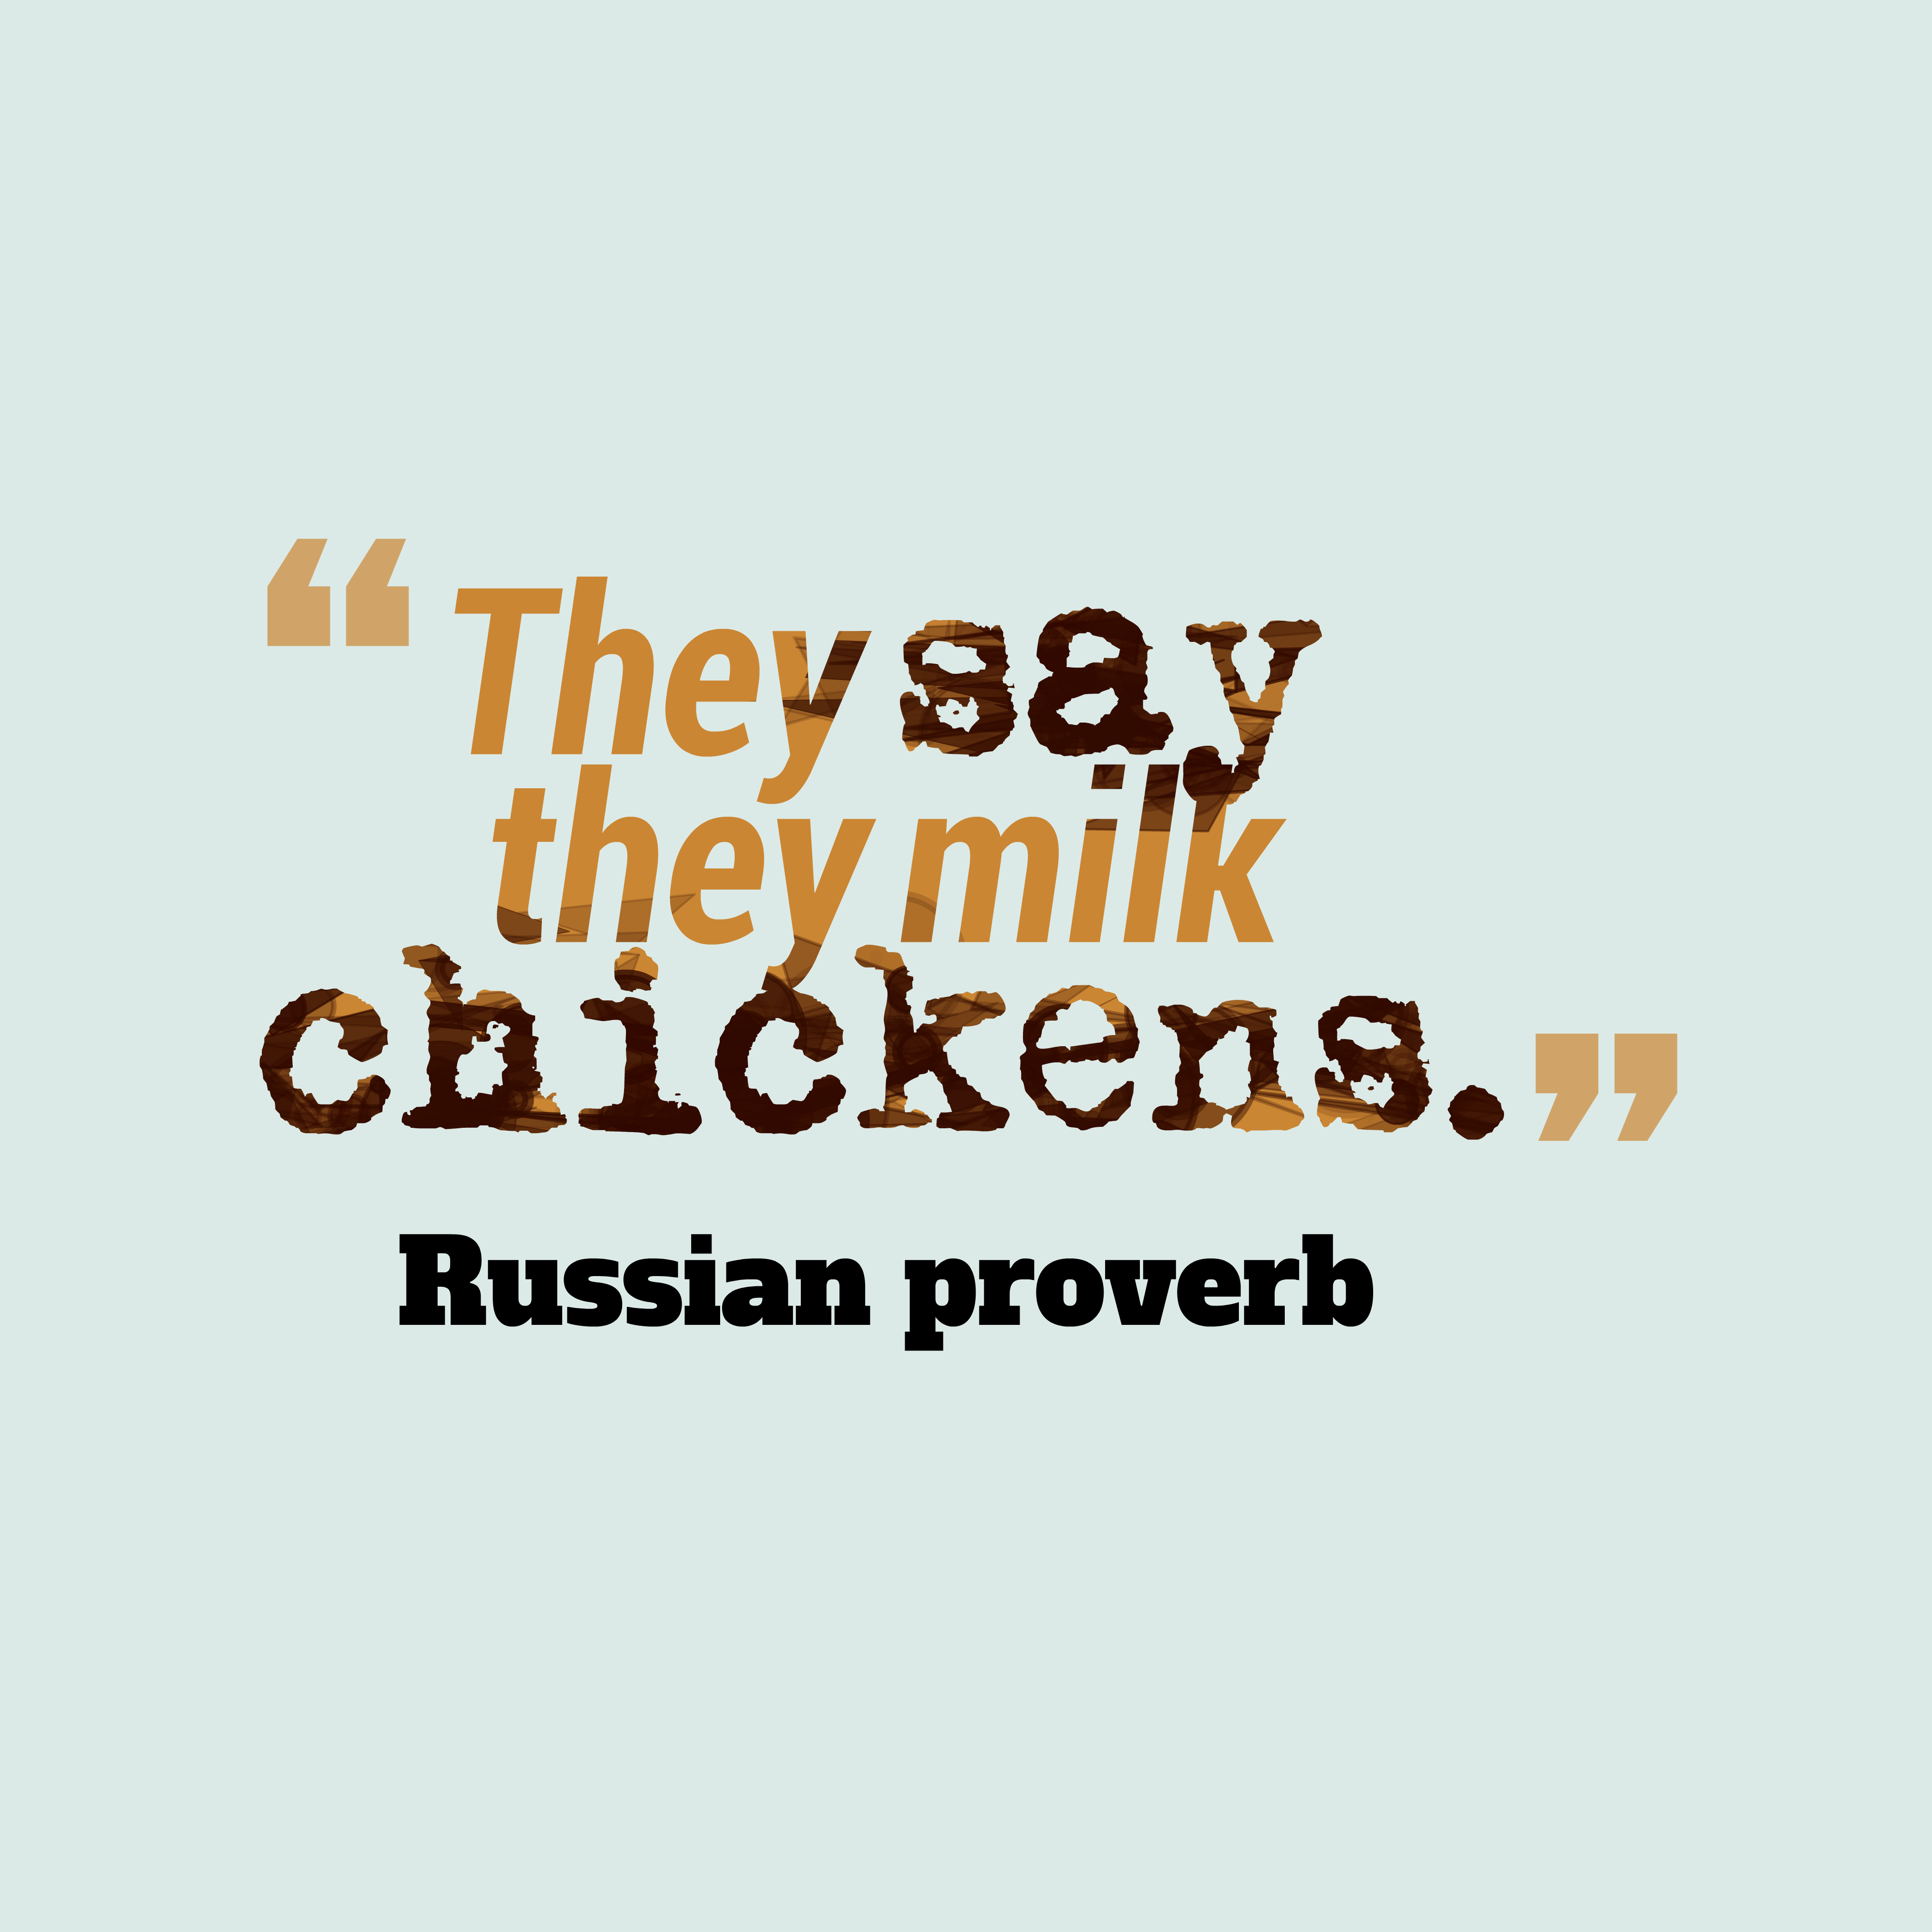 Quotes image of They say they milk chickens.